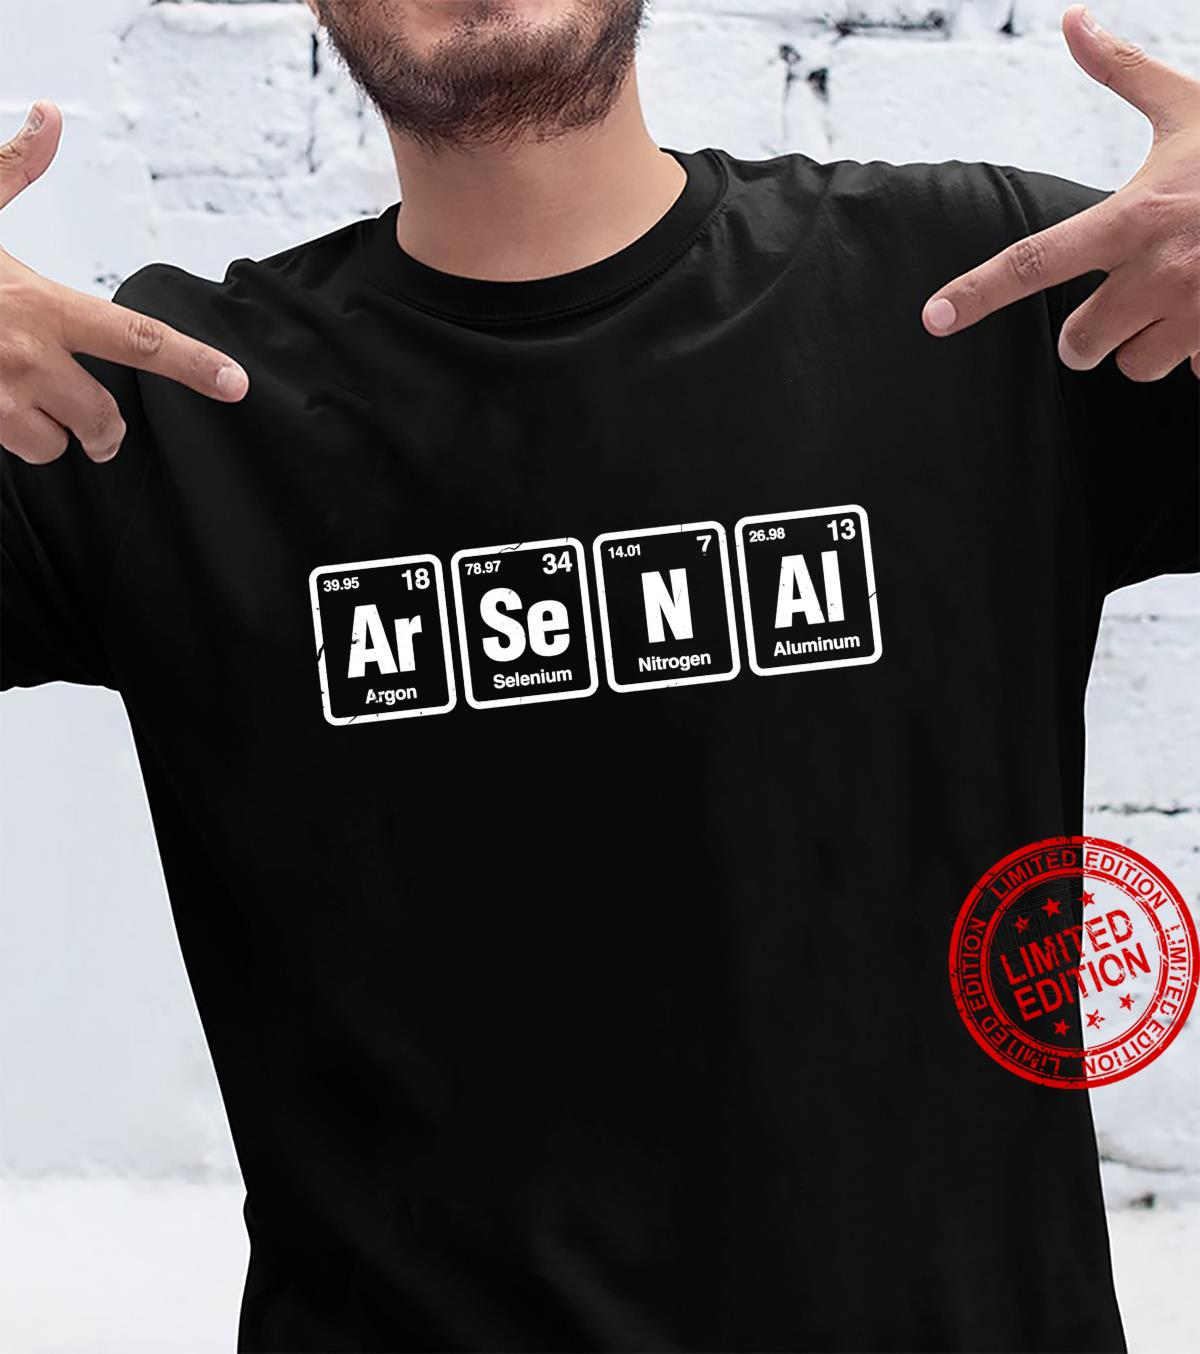 Arsenal ArSeNAl Periodic Table Elements Chemistry Shirt